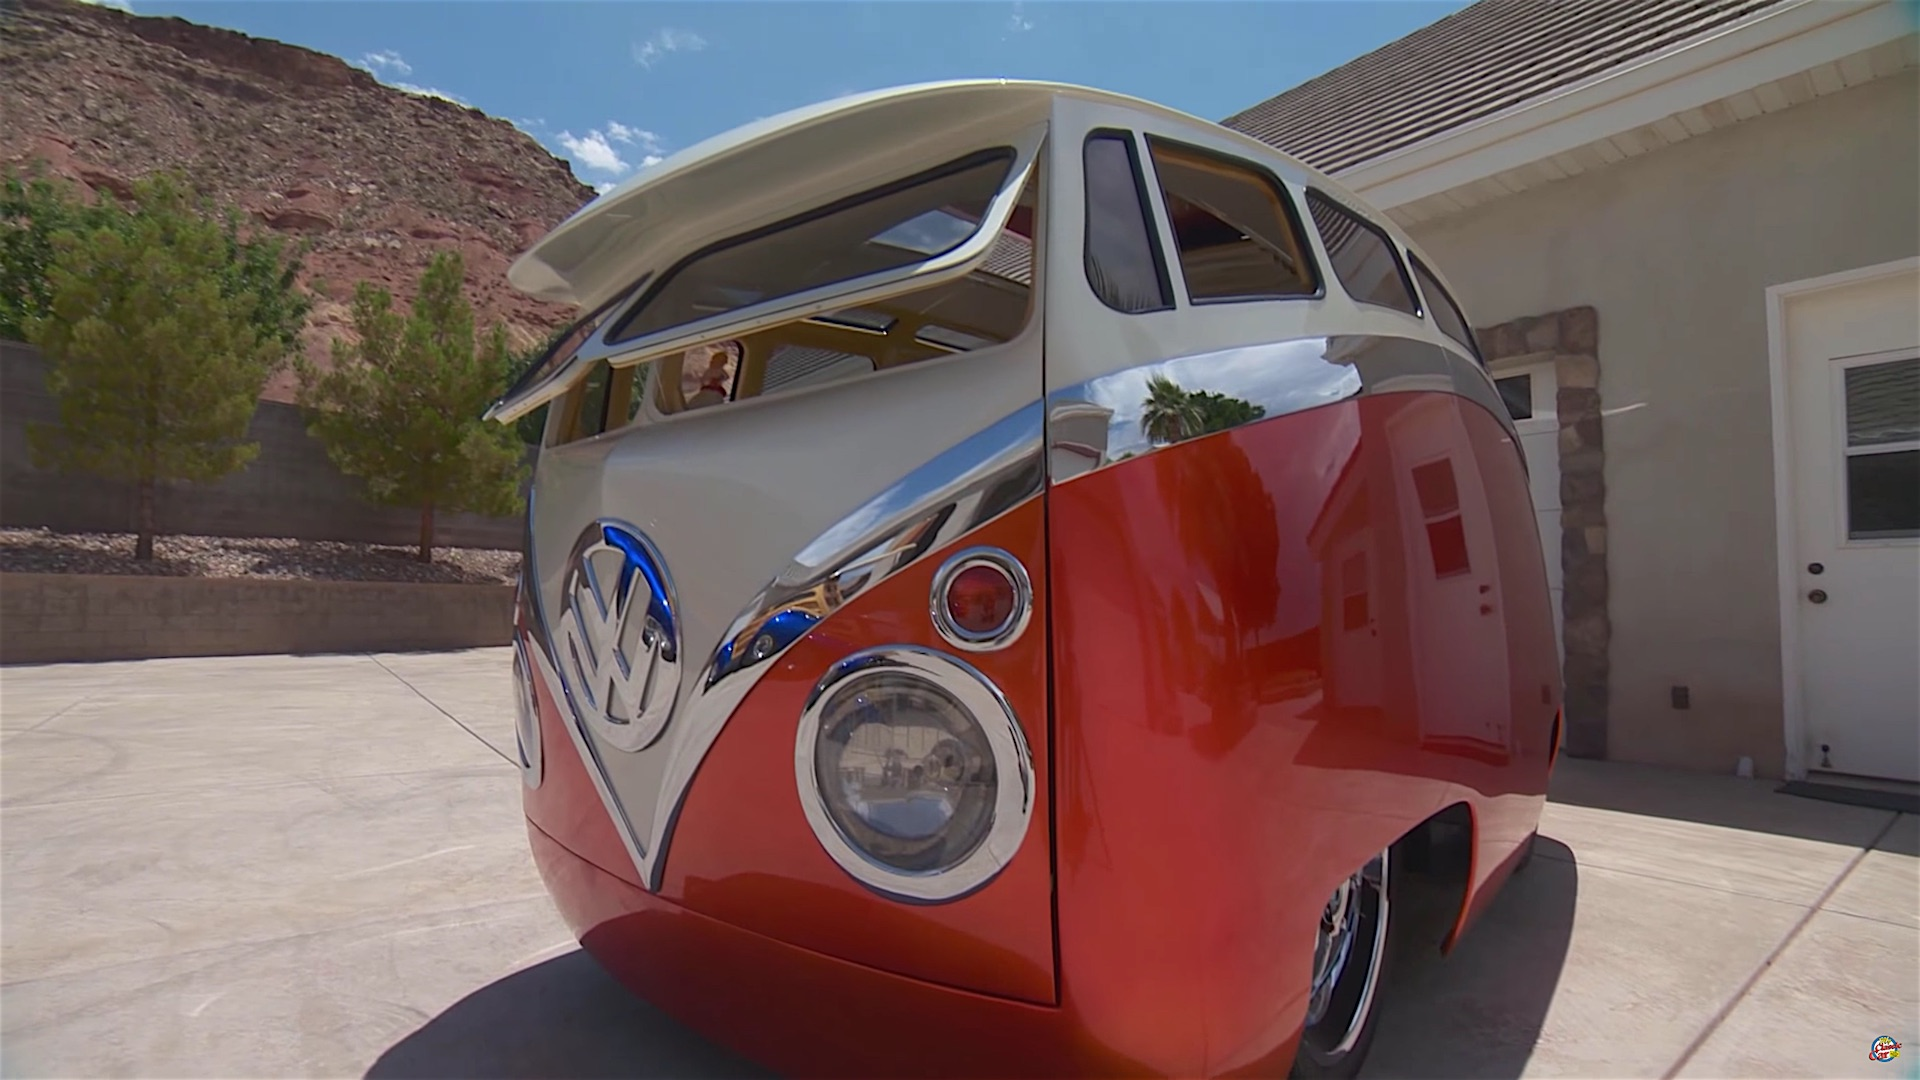 A Story of A VW Bus With Cartoon Customs Modification | DamnedWerk